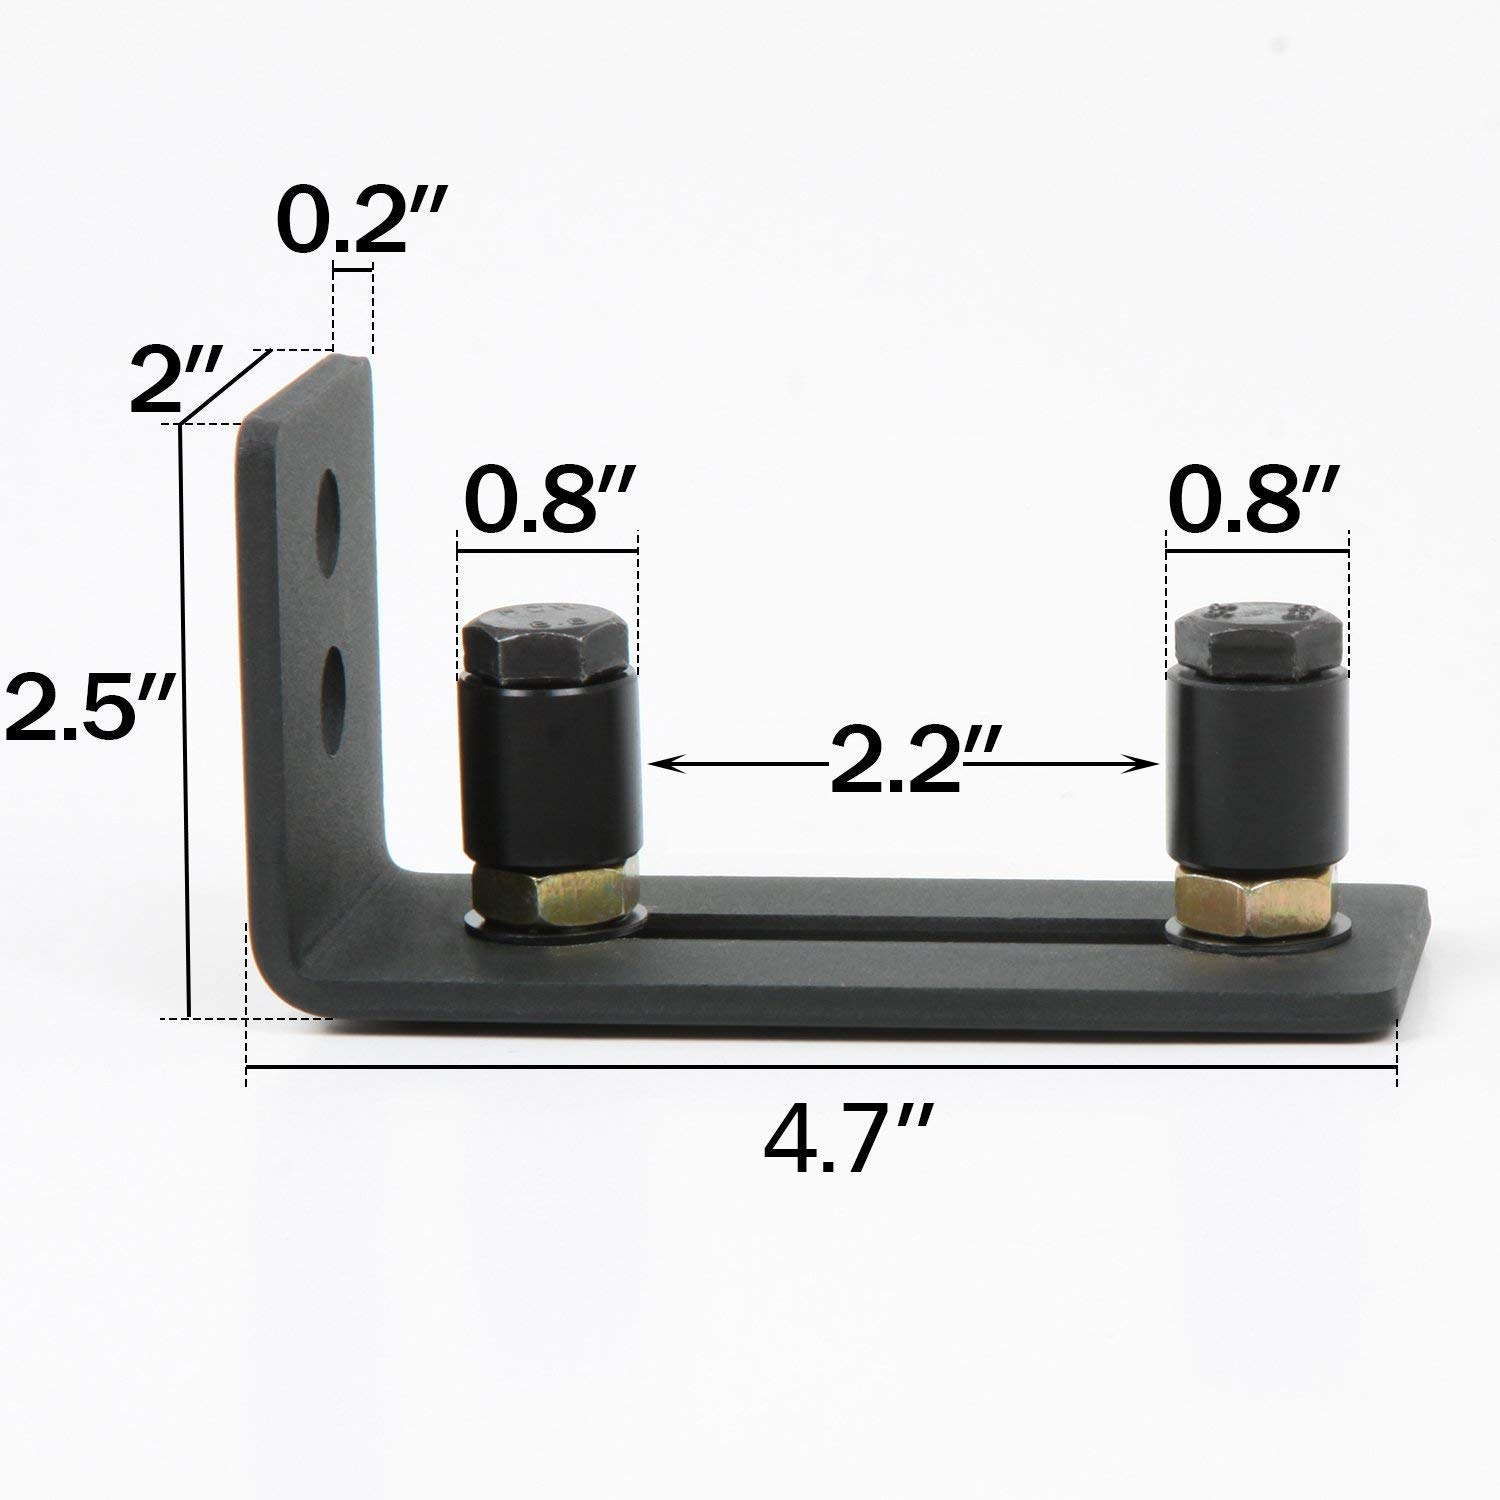 Black HOMEE Small Size Rolling Sliding Wood Latch Privacy Lock for Pocket Doors Garage and Shed Wood Gates Barn Door Lock